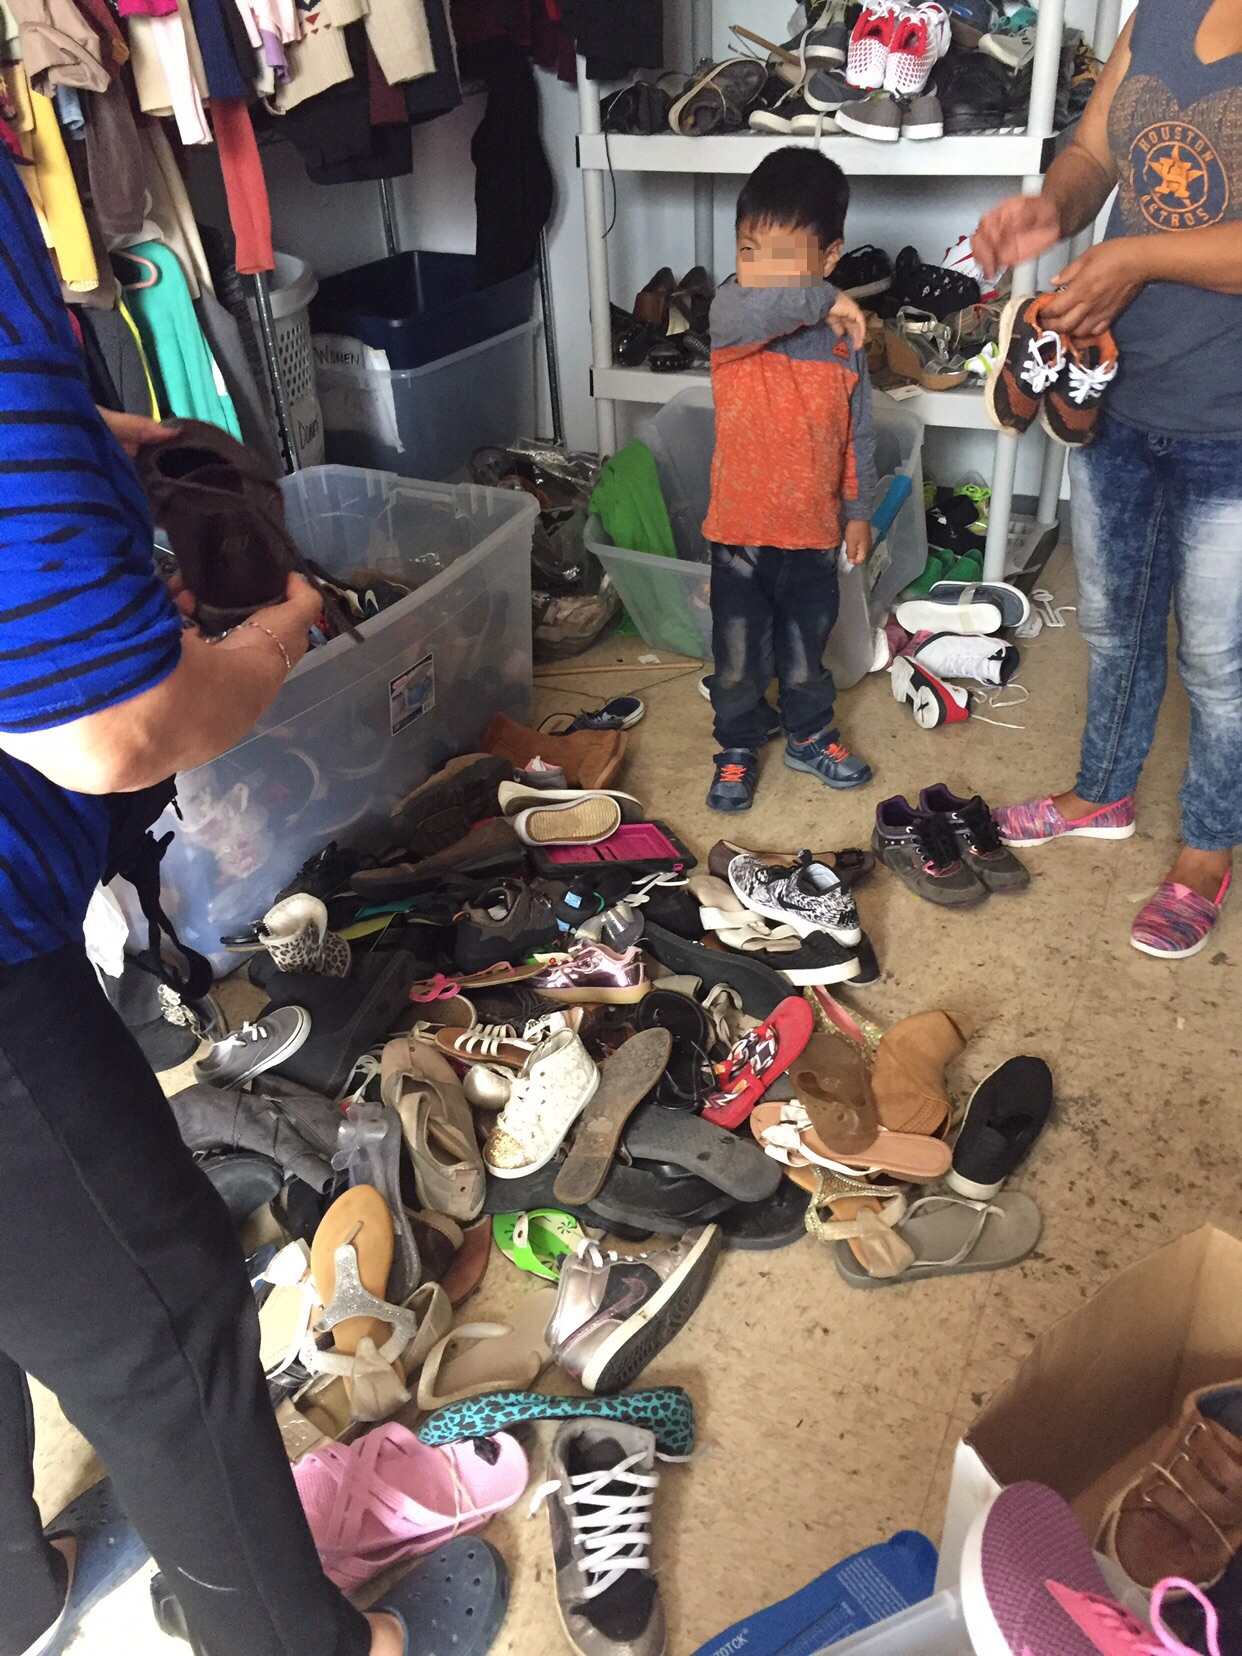 """Pam and I in the """"shoe room"""" at Catholic Charities in McAllen, TX, finding shoes for refugees who had just been released from detention. The room had been raided the previous night."""